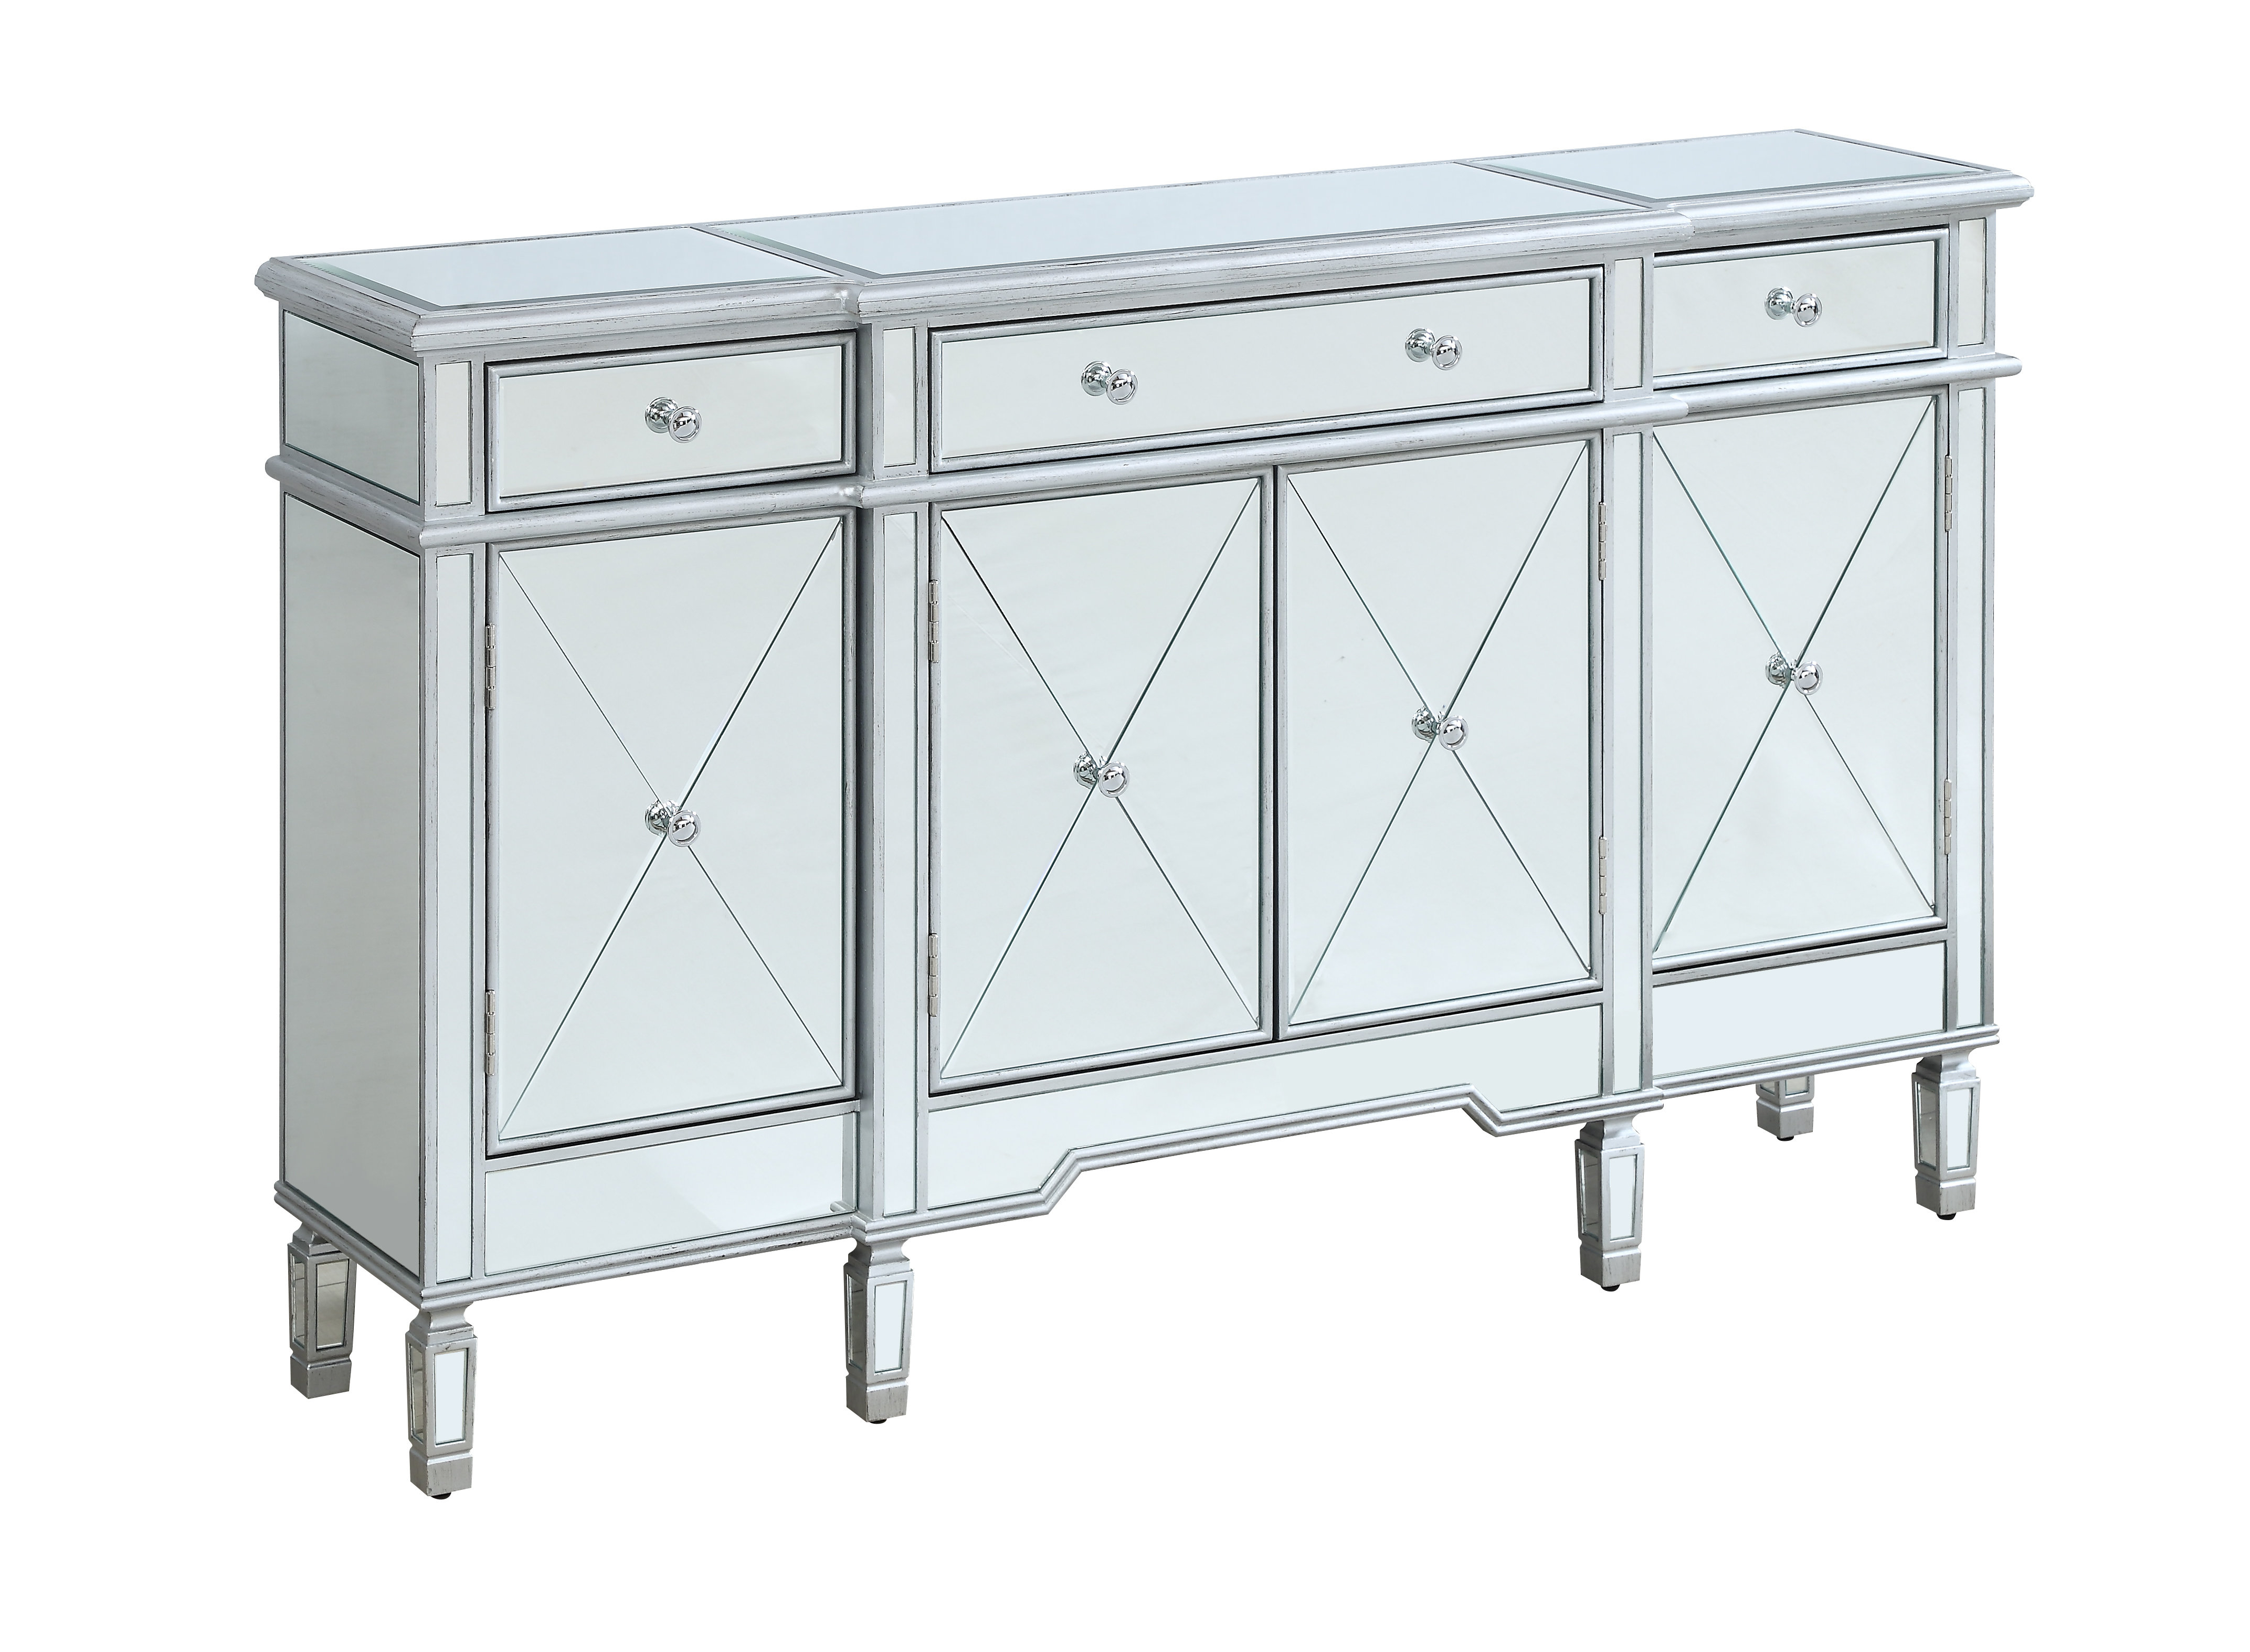 Castelli Sideboard Pertaining To Most Recently Released Castelli Sideboards (Gallery 2 of 20)